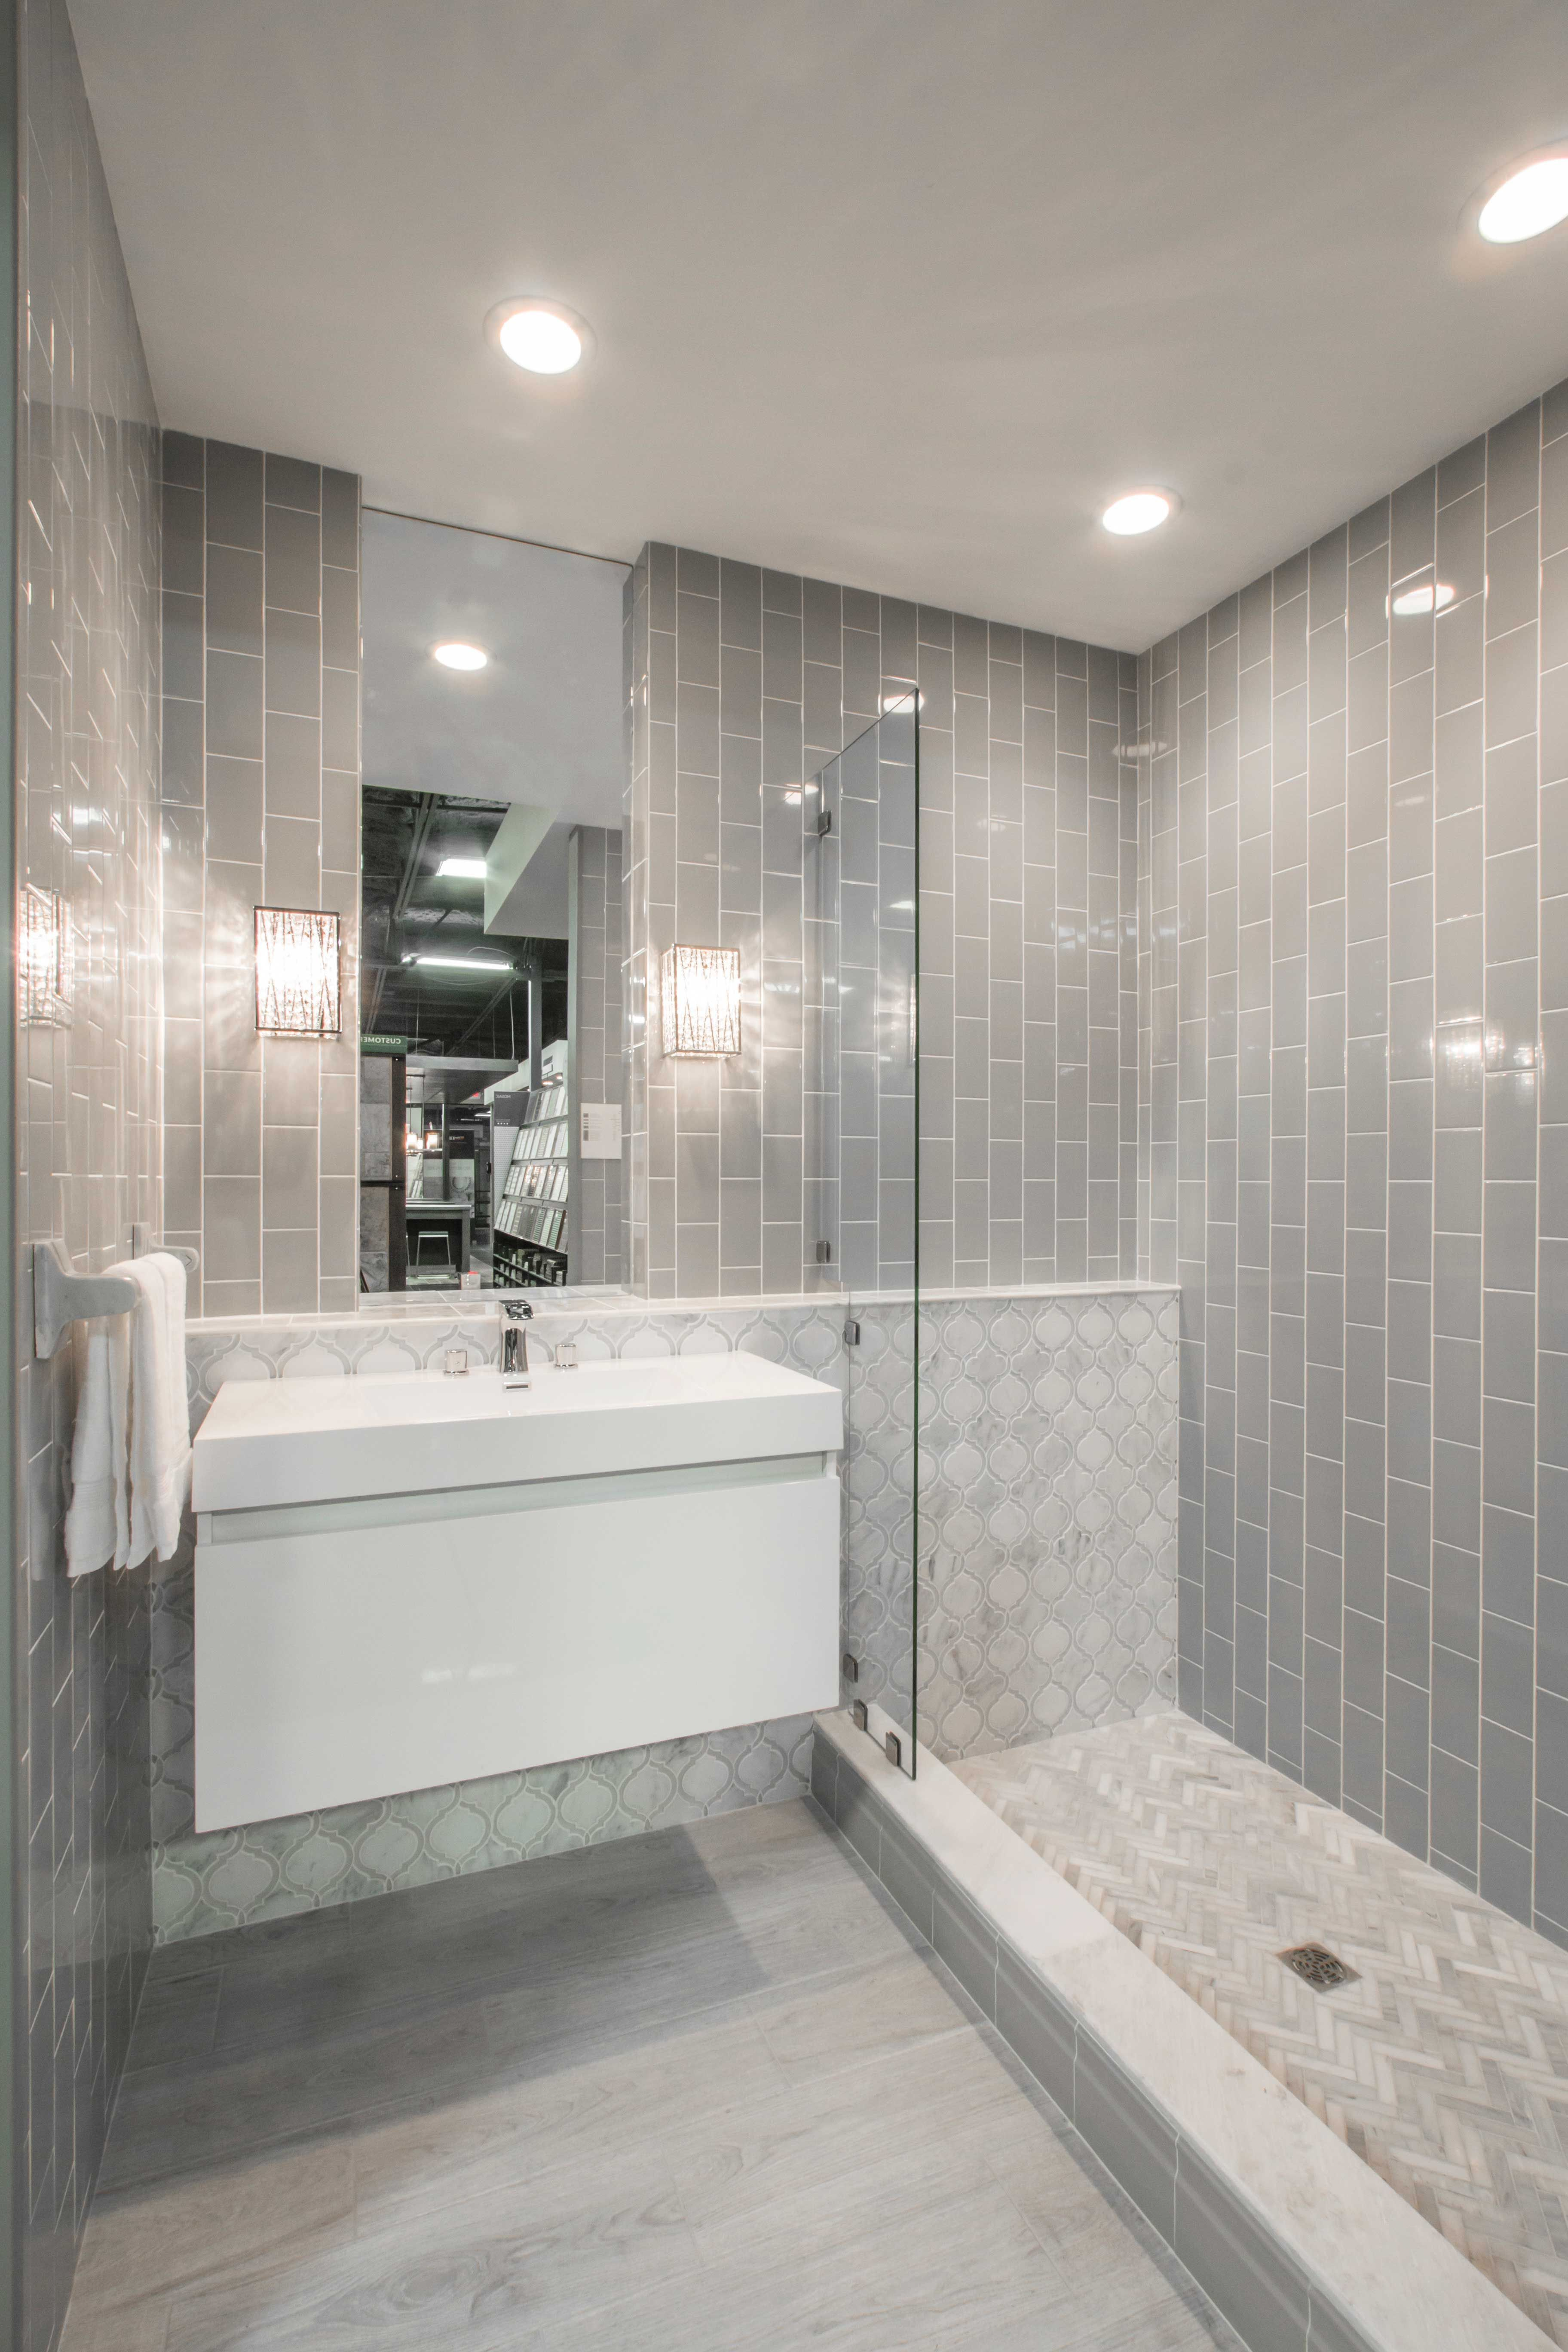 Design Small Bathroom Online Free Check More At Http Www Homeplans Club 2019 07 24 Design Smal Modern Bathroom Remodel Modern Bathroom Modern Bathroom Design